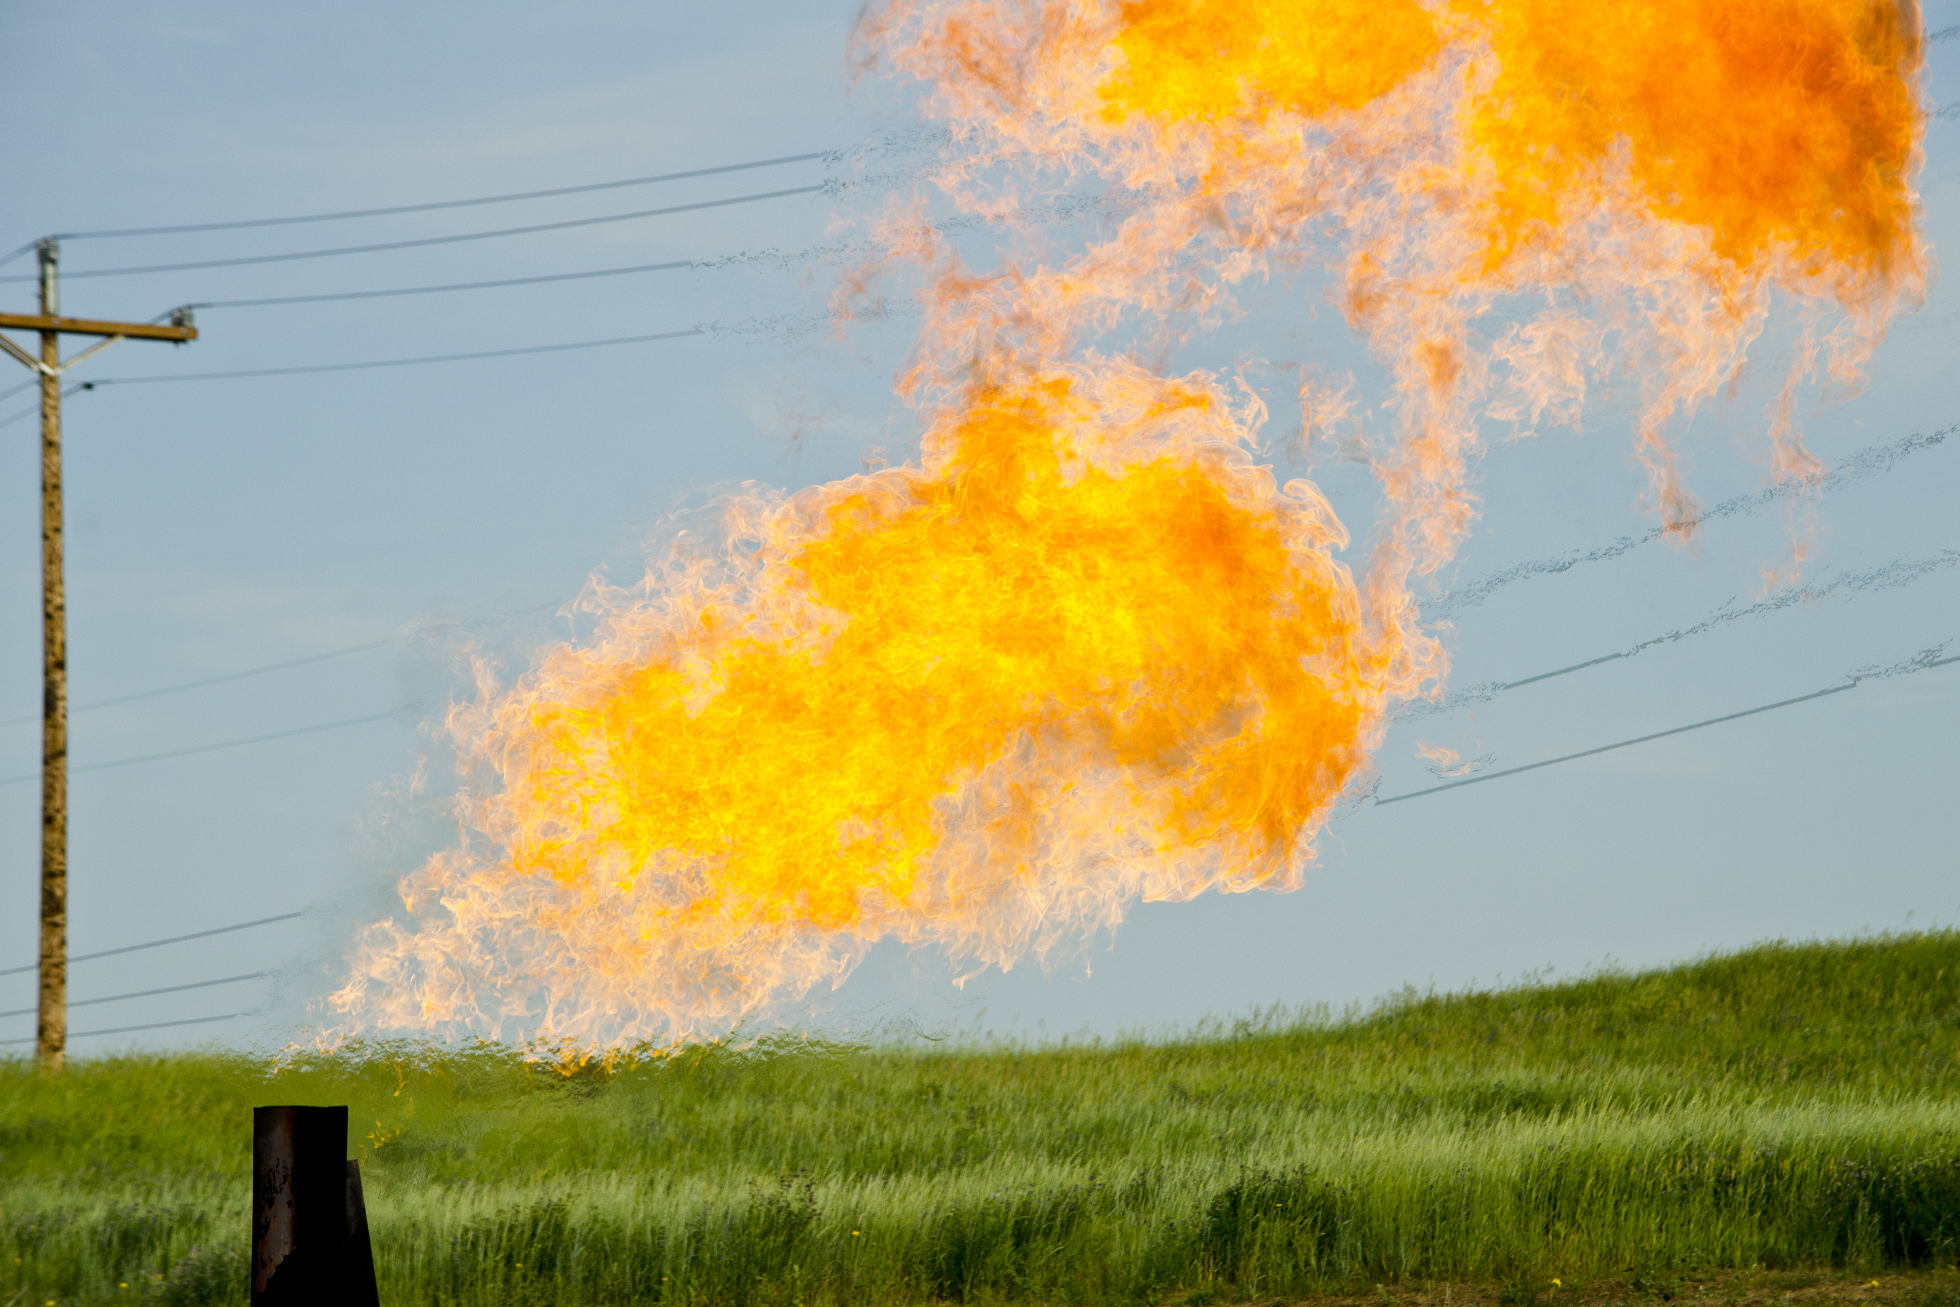 Natural gas, fracking and climate change – gas is not a solution ...